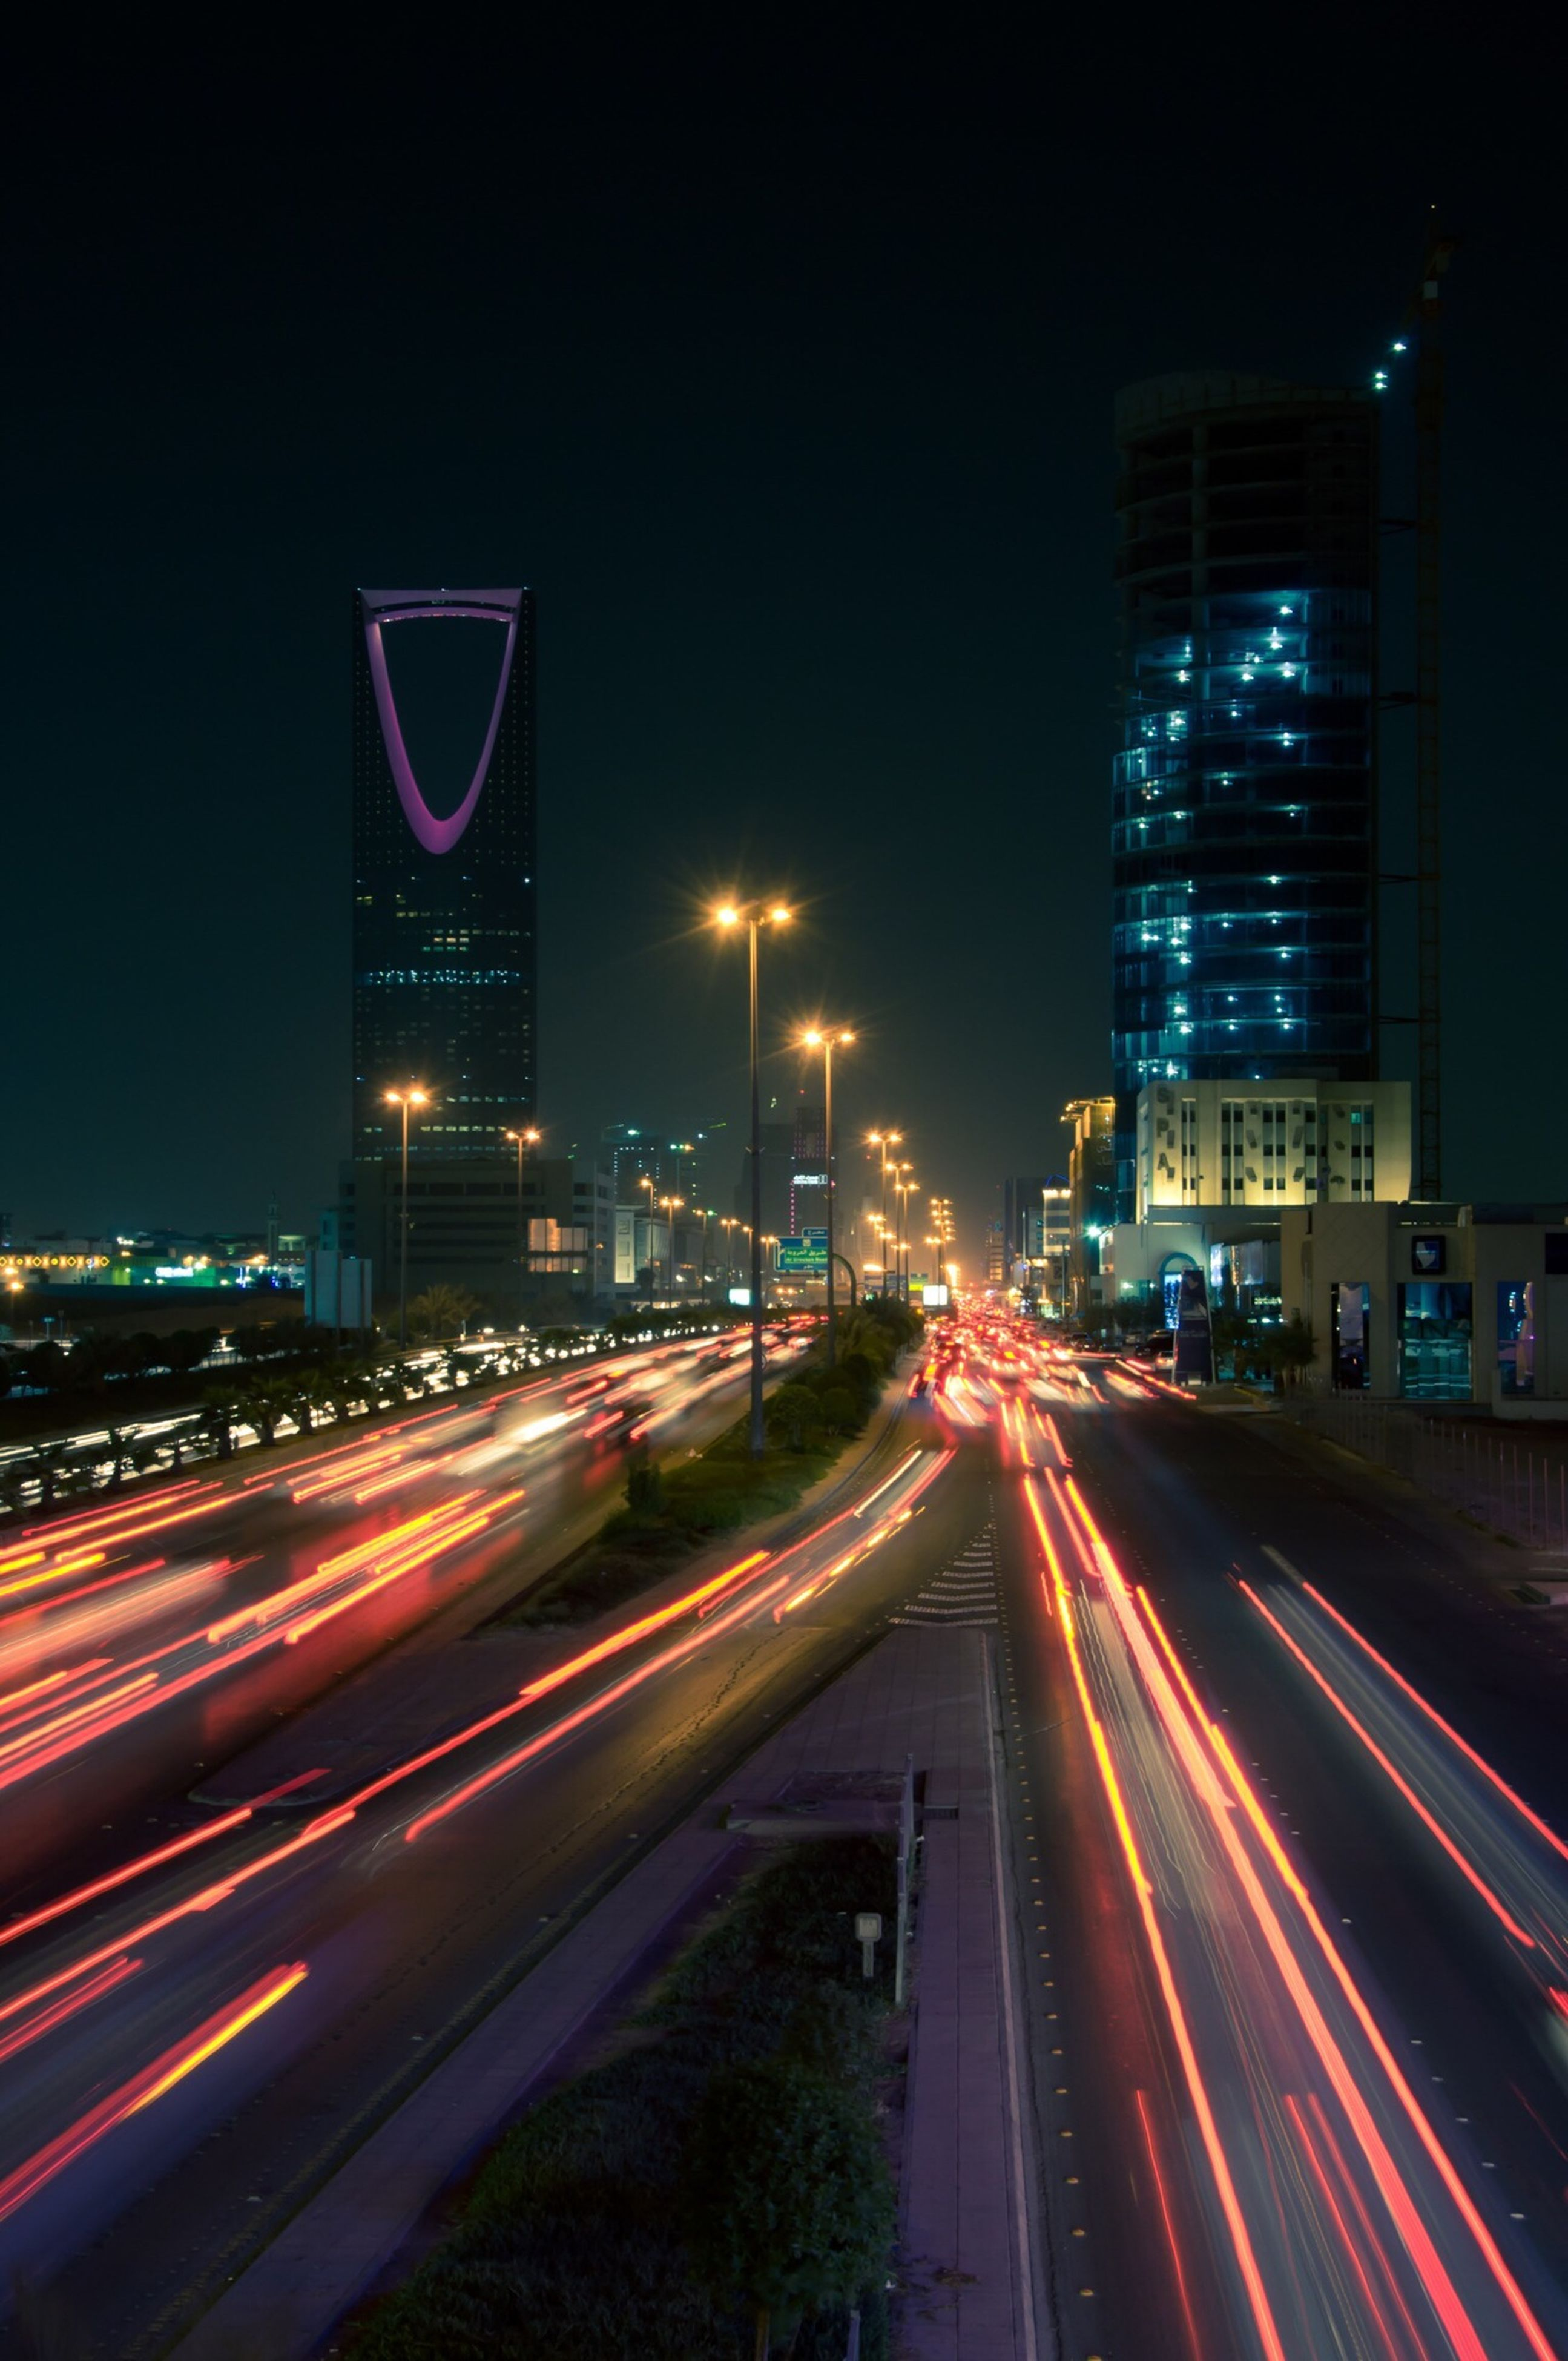 illuminated, night, transportation, long exposure, light trail, city, architecture, building exterior, speed, motion, built structure, traffic, road, blurred motion, city life, street, city street, road marking, street light, the way forward